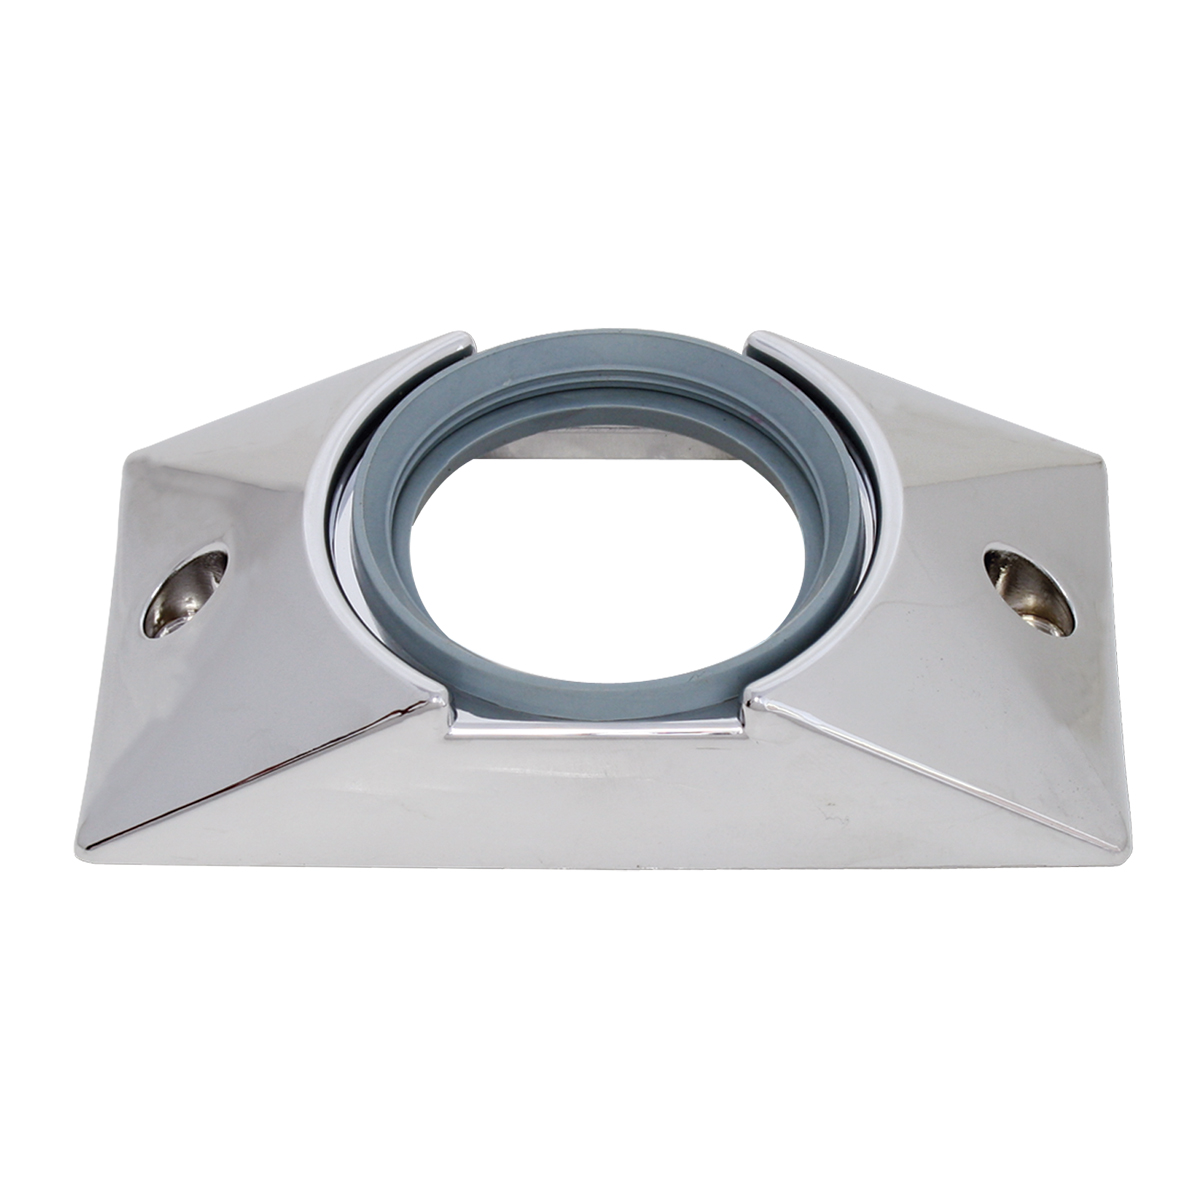 1 2 Grommet Mounting Bracket With Grommet For 2 1 2